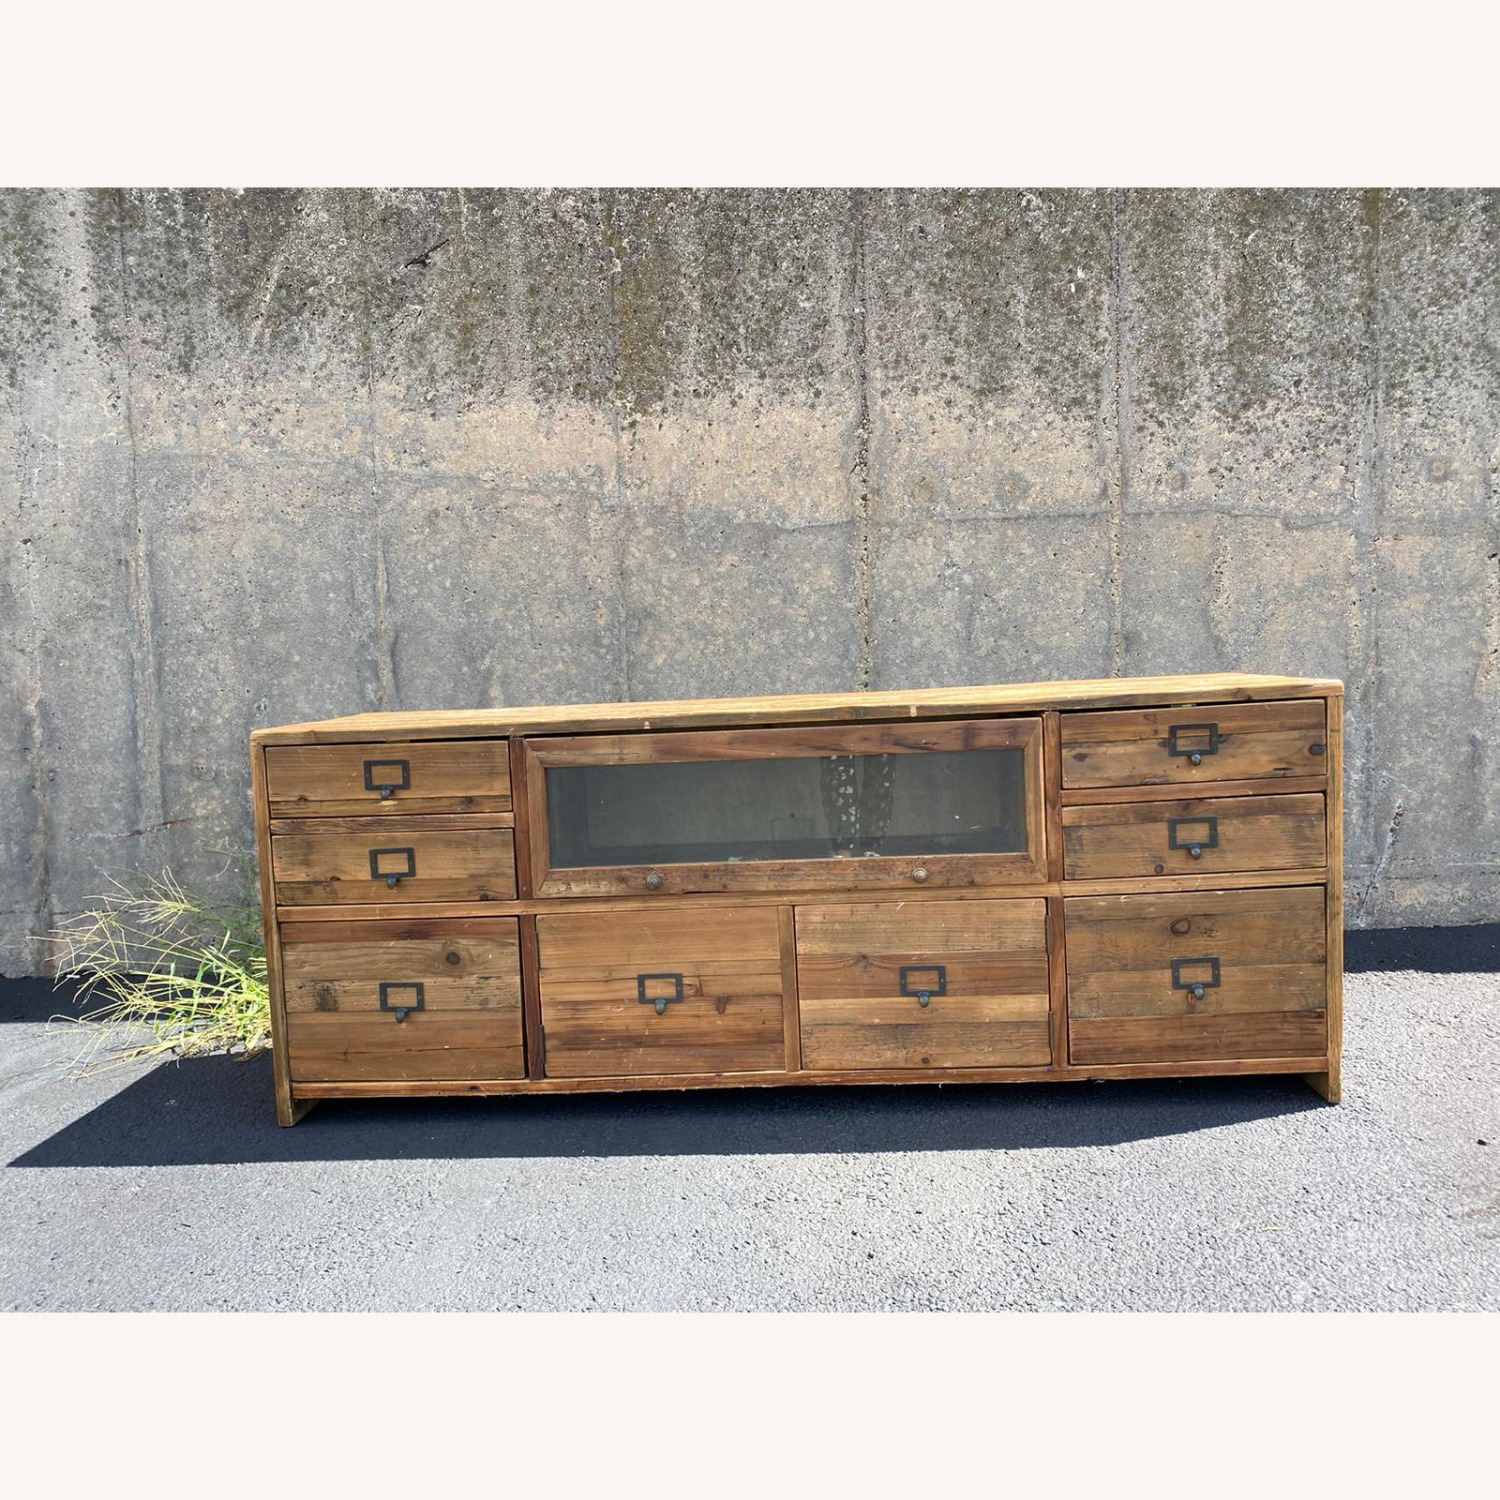 Crate & Barrel Reclaimed Wood Media Console - image-2